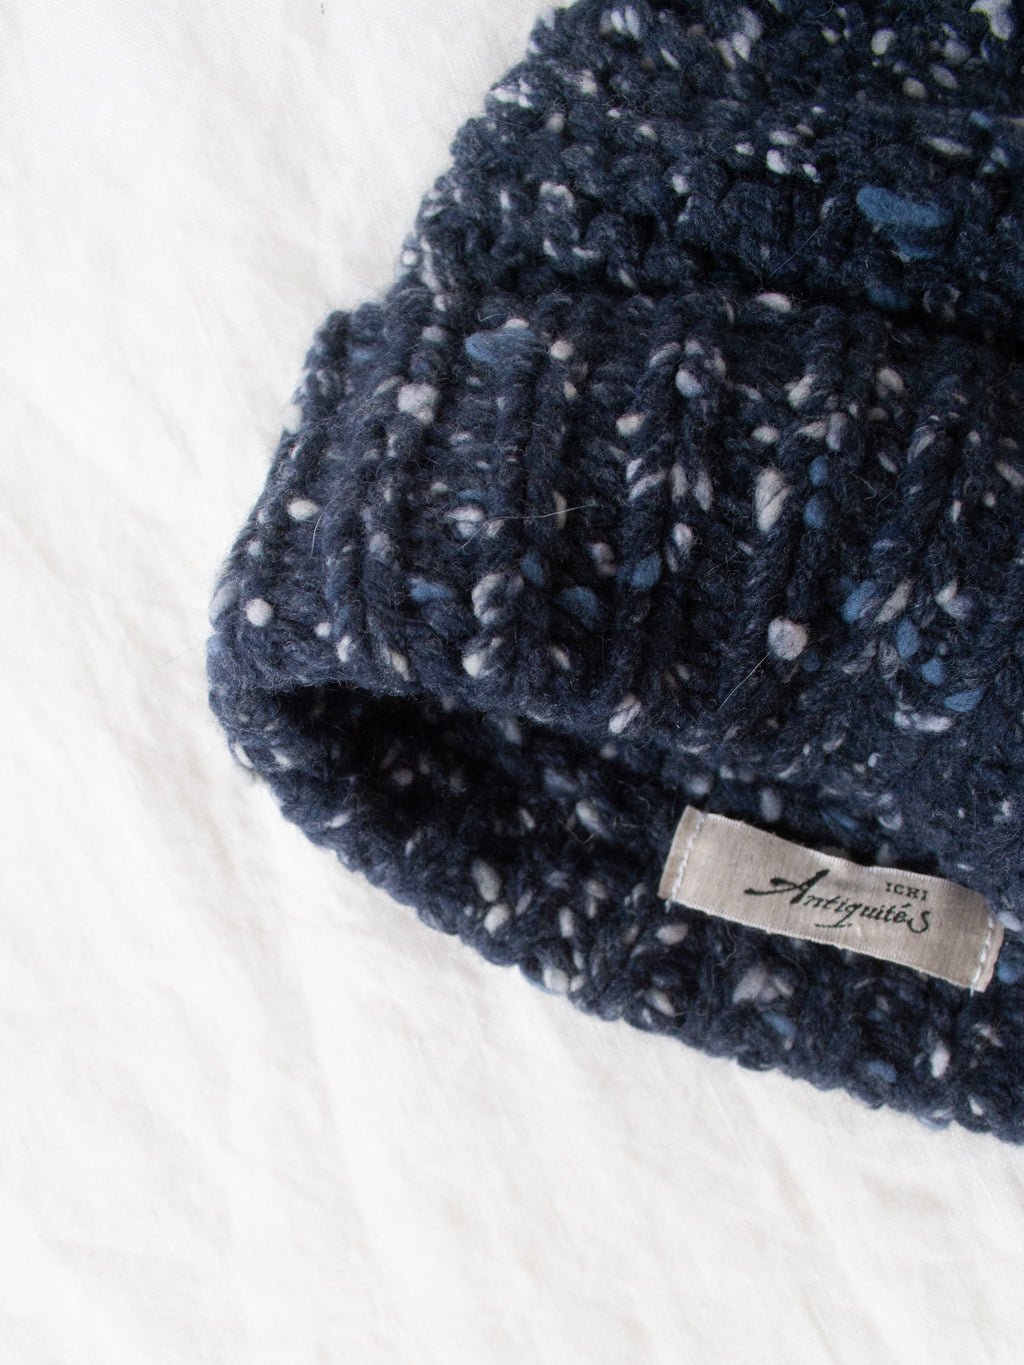 Namu Shop - Ichi Antiquites Wool Angora Cap - Navy